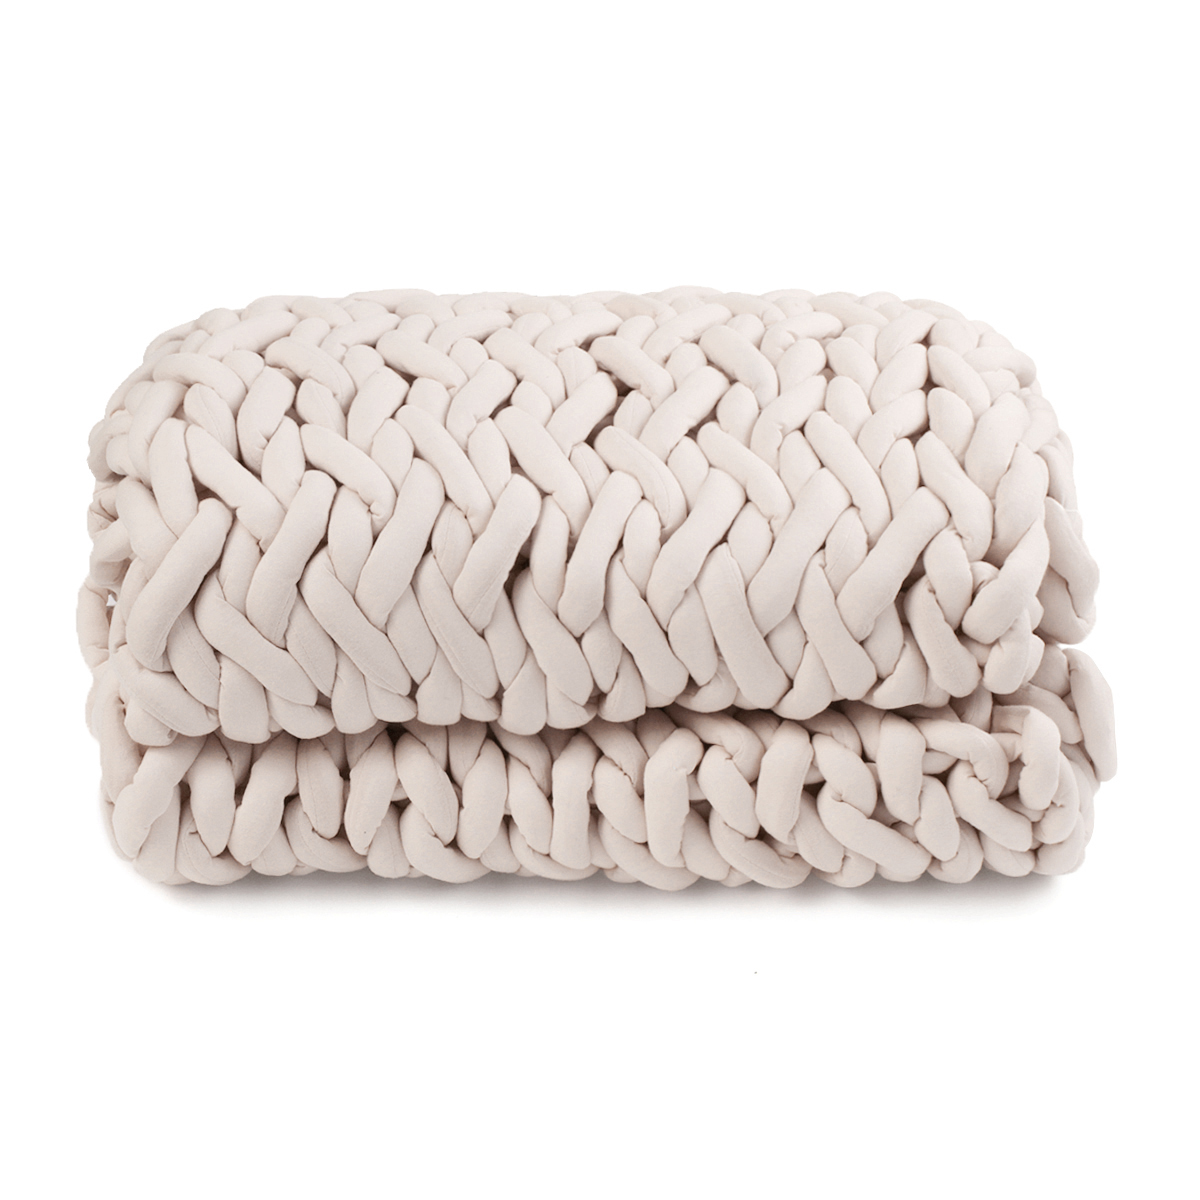 100x120cm Handmade Knitted Blankets Soft Warm Thick Line Cotton Throw Blankets